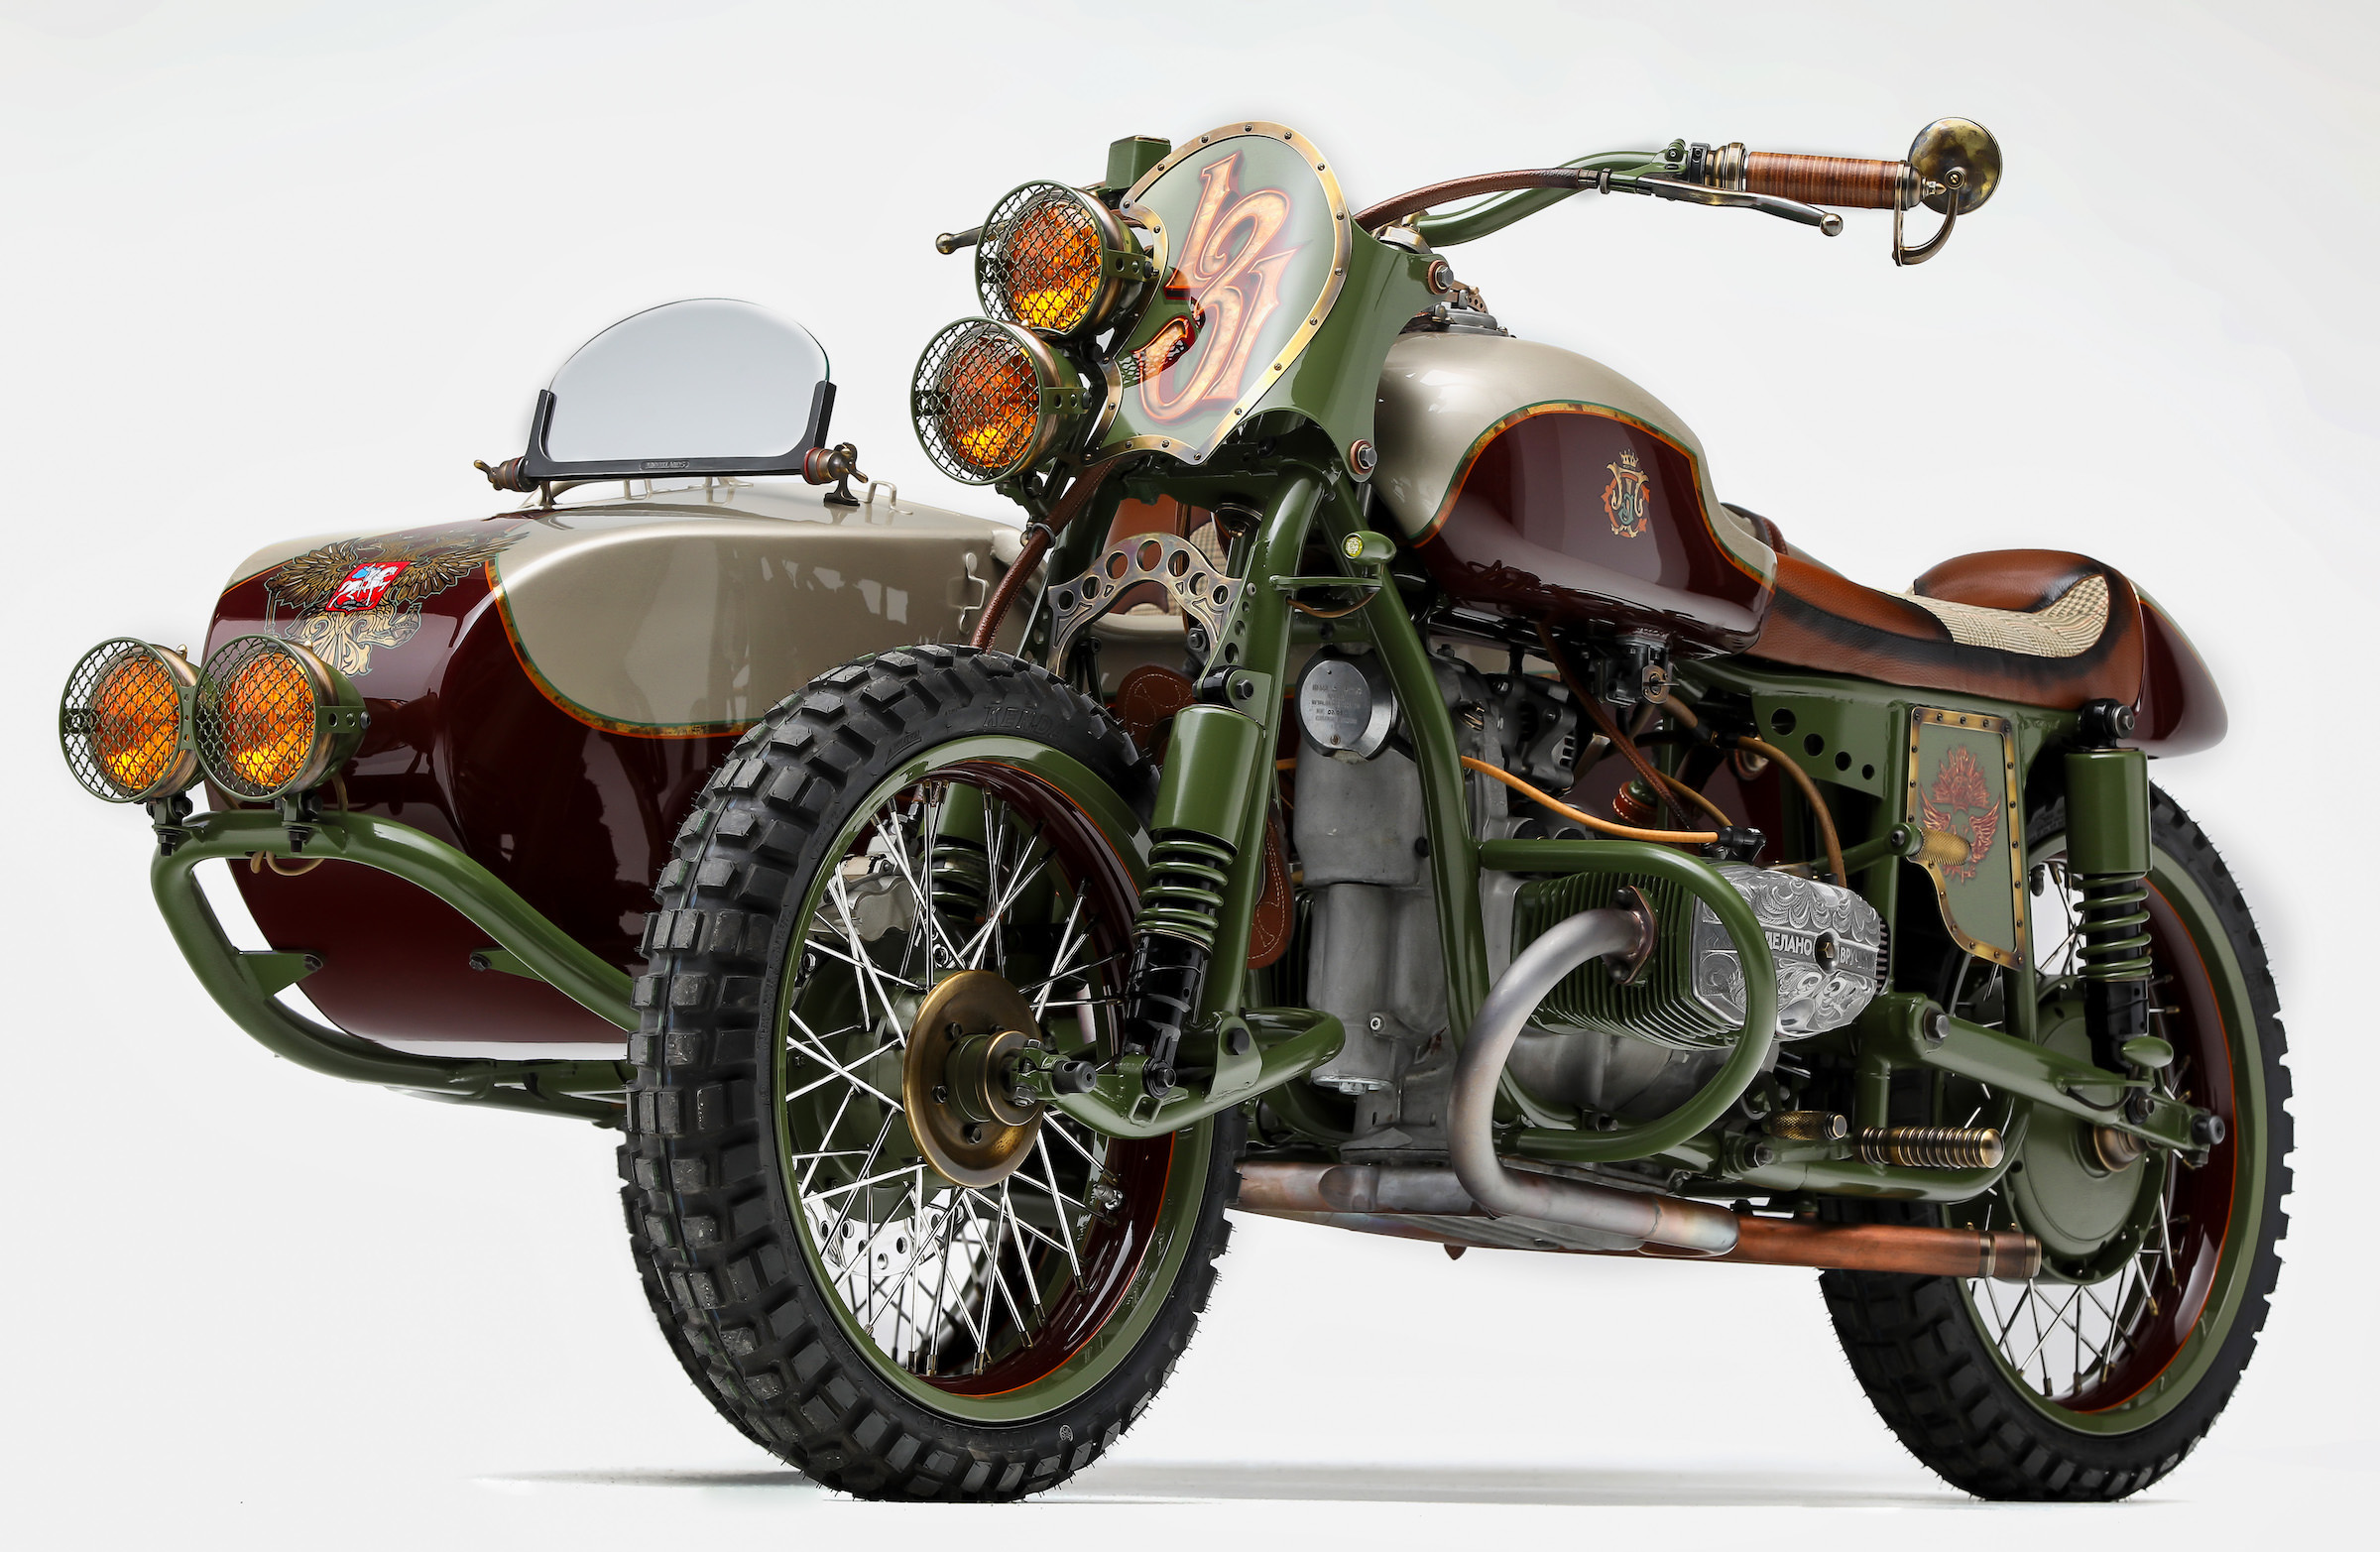 Custom 2wd Ural Sidecar Motorcycle By Le Mani Moto From